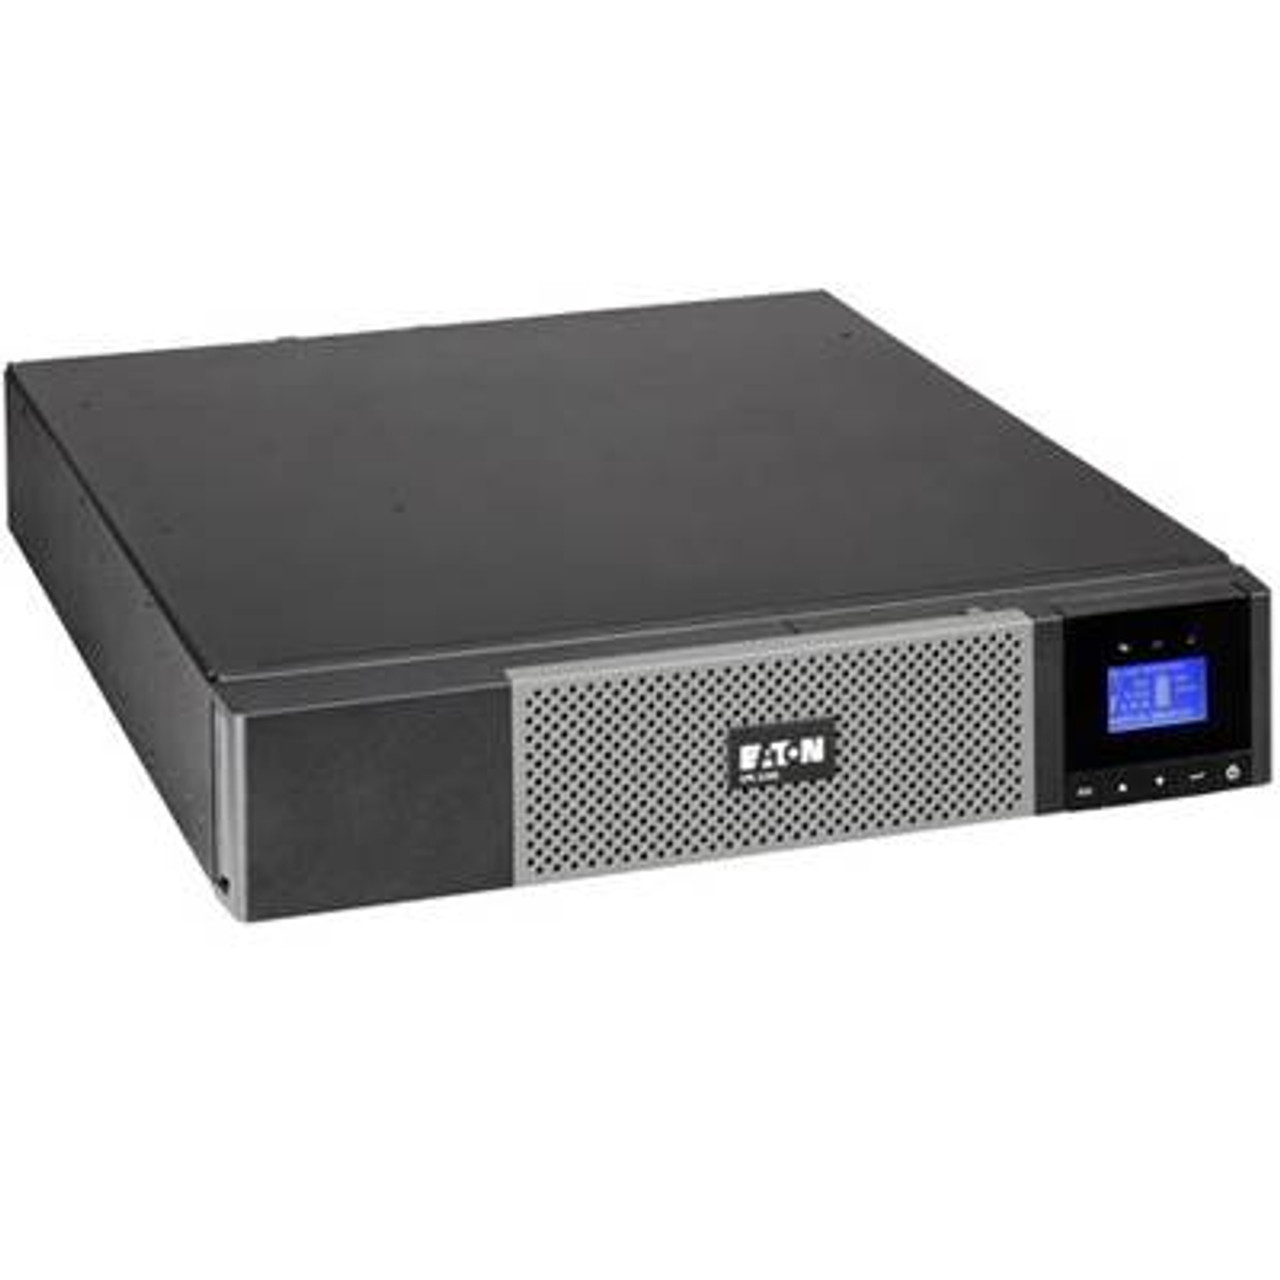 Image for Eaton 5PX 2200VA/1980W 2U Rack/Tower CX Computer Superstore